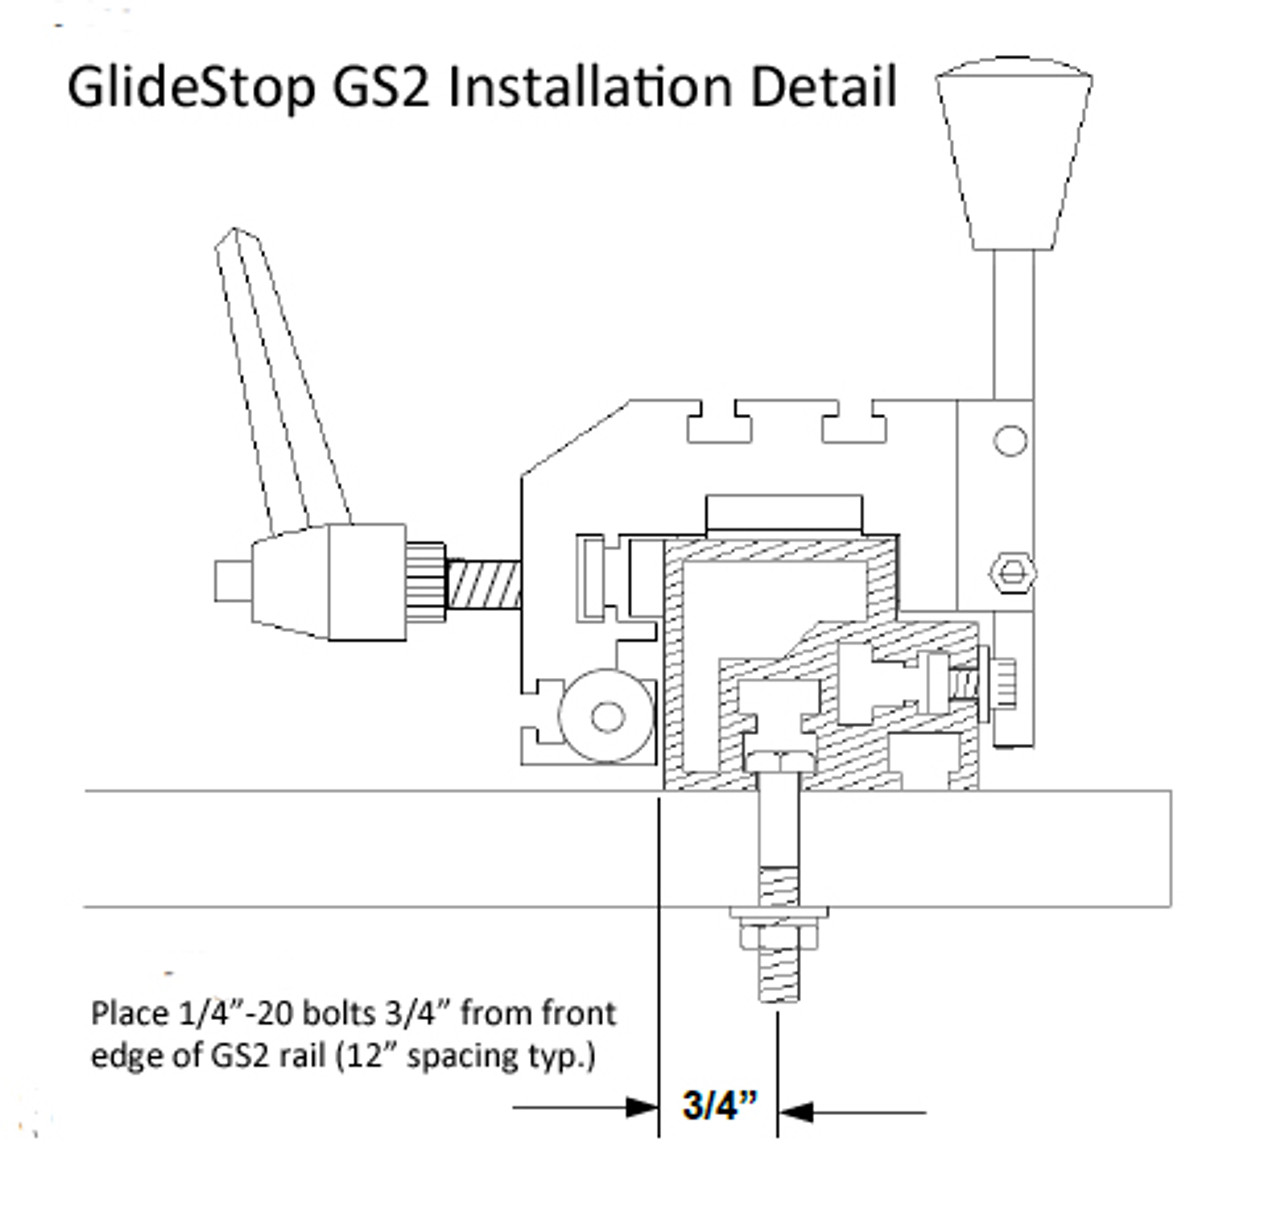 GlideStop GS2 rail installation detail, by Hoffmann-USA.jpg